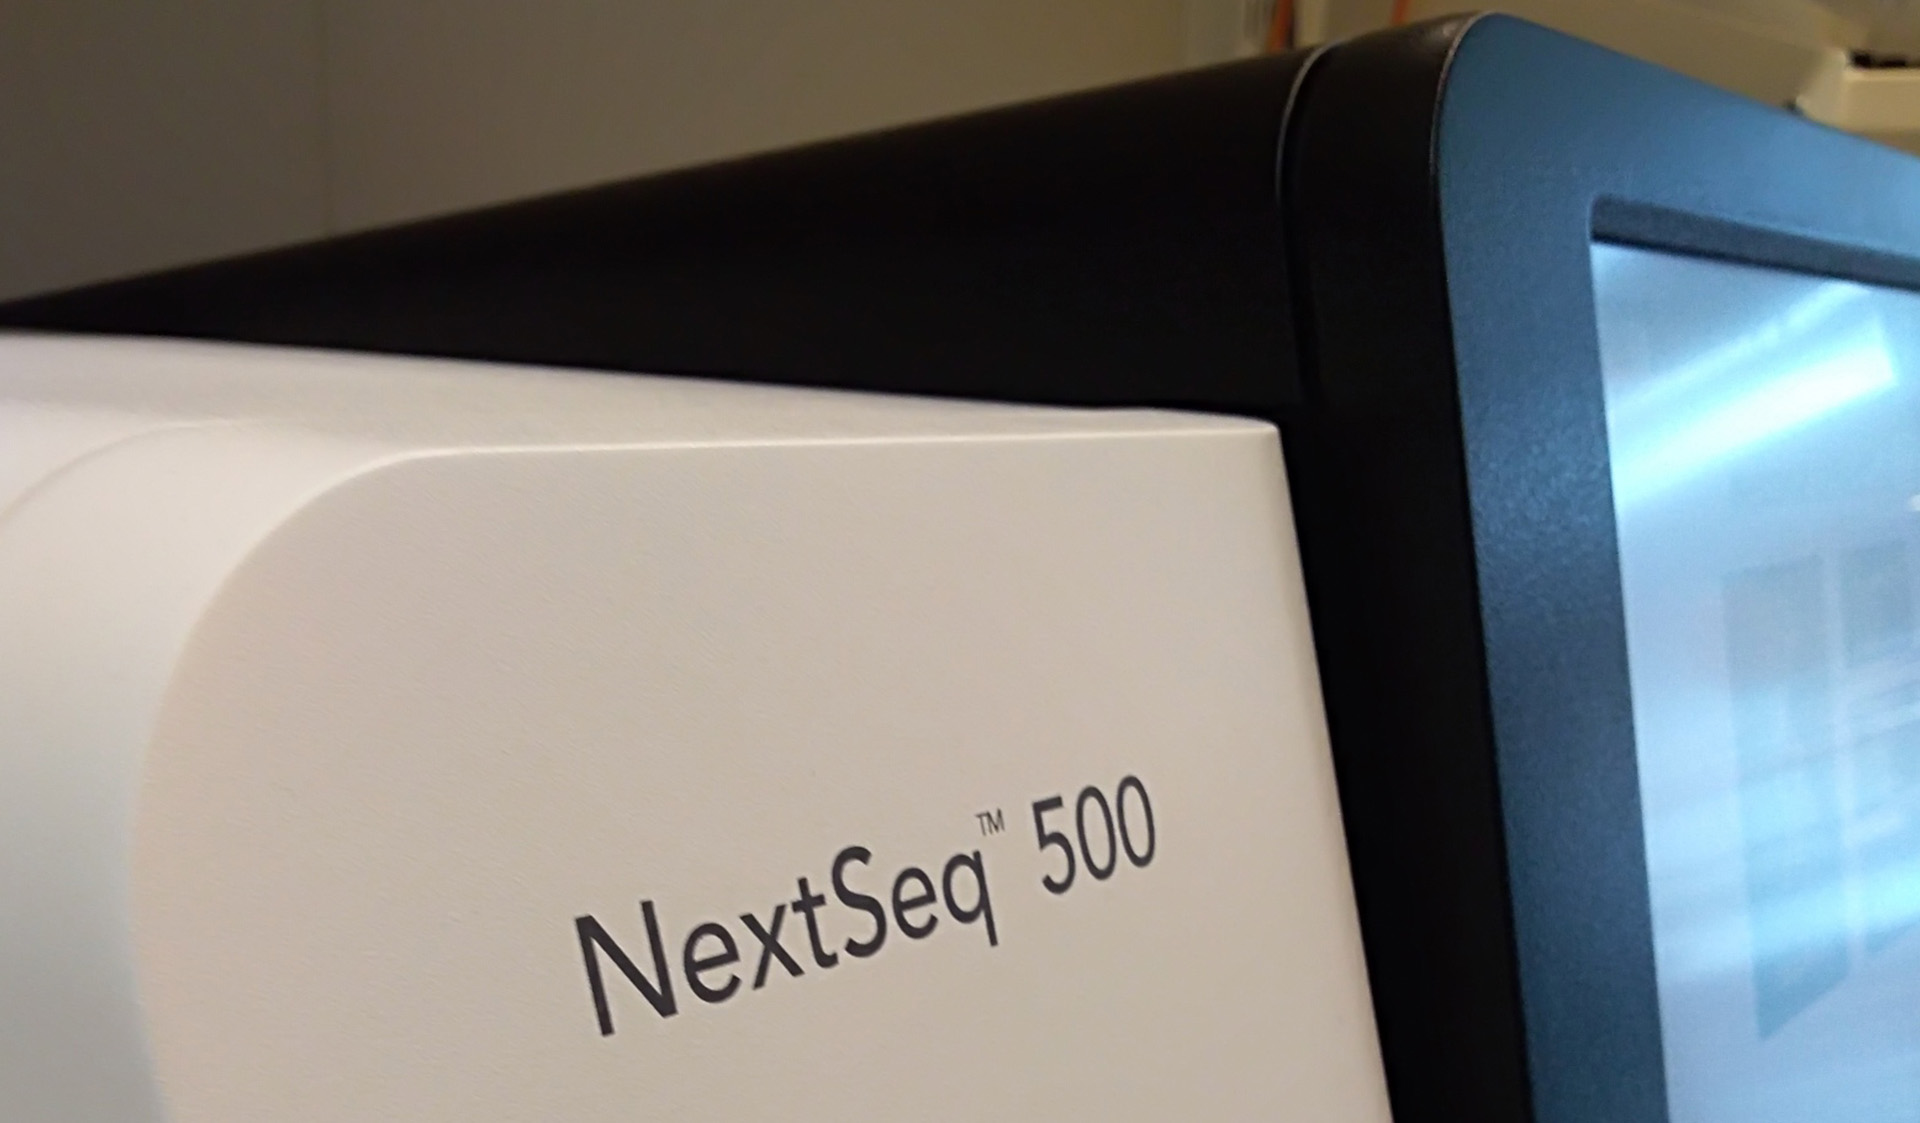 NextSeq for Next Generation Sequencing.